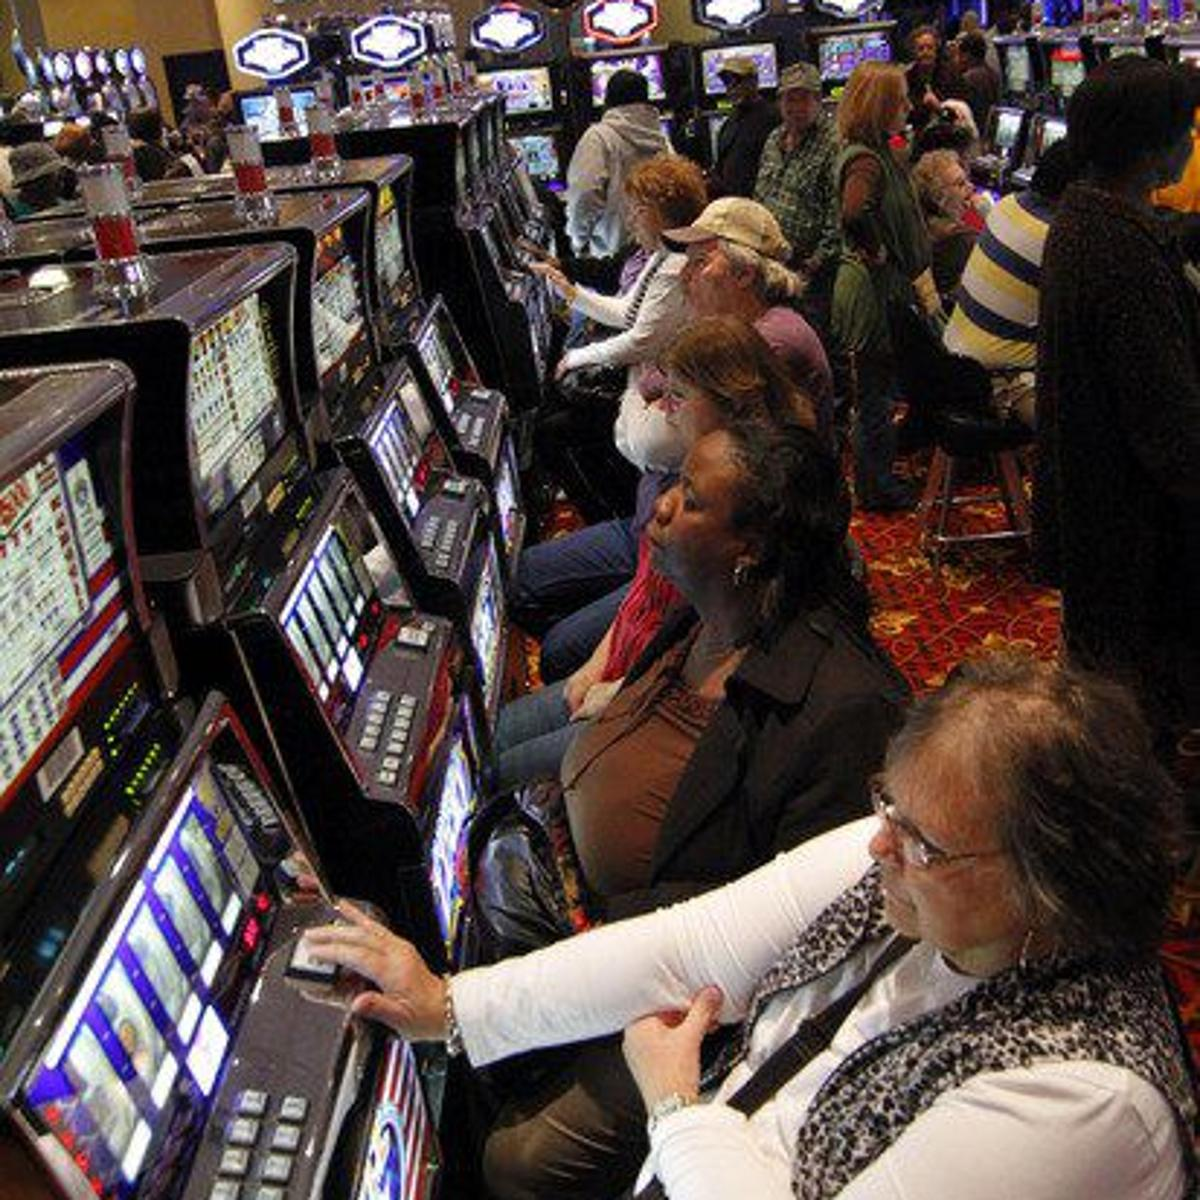 Sports betting to come to Choctaw casinos | Local News